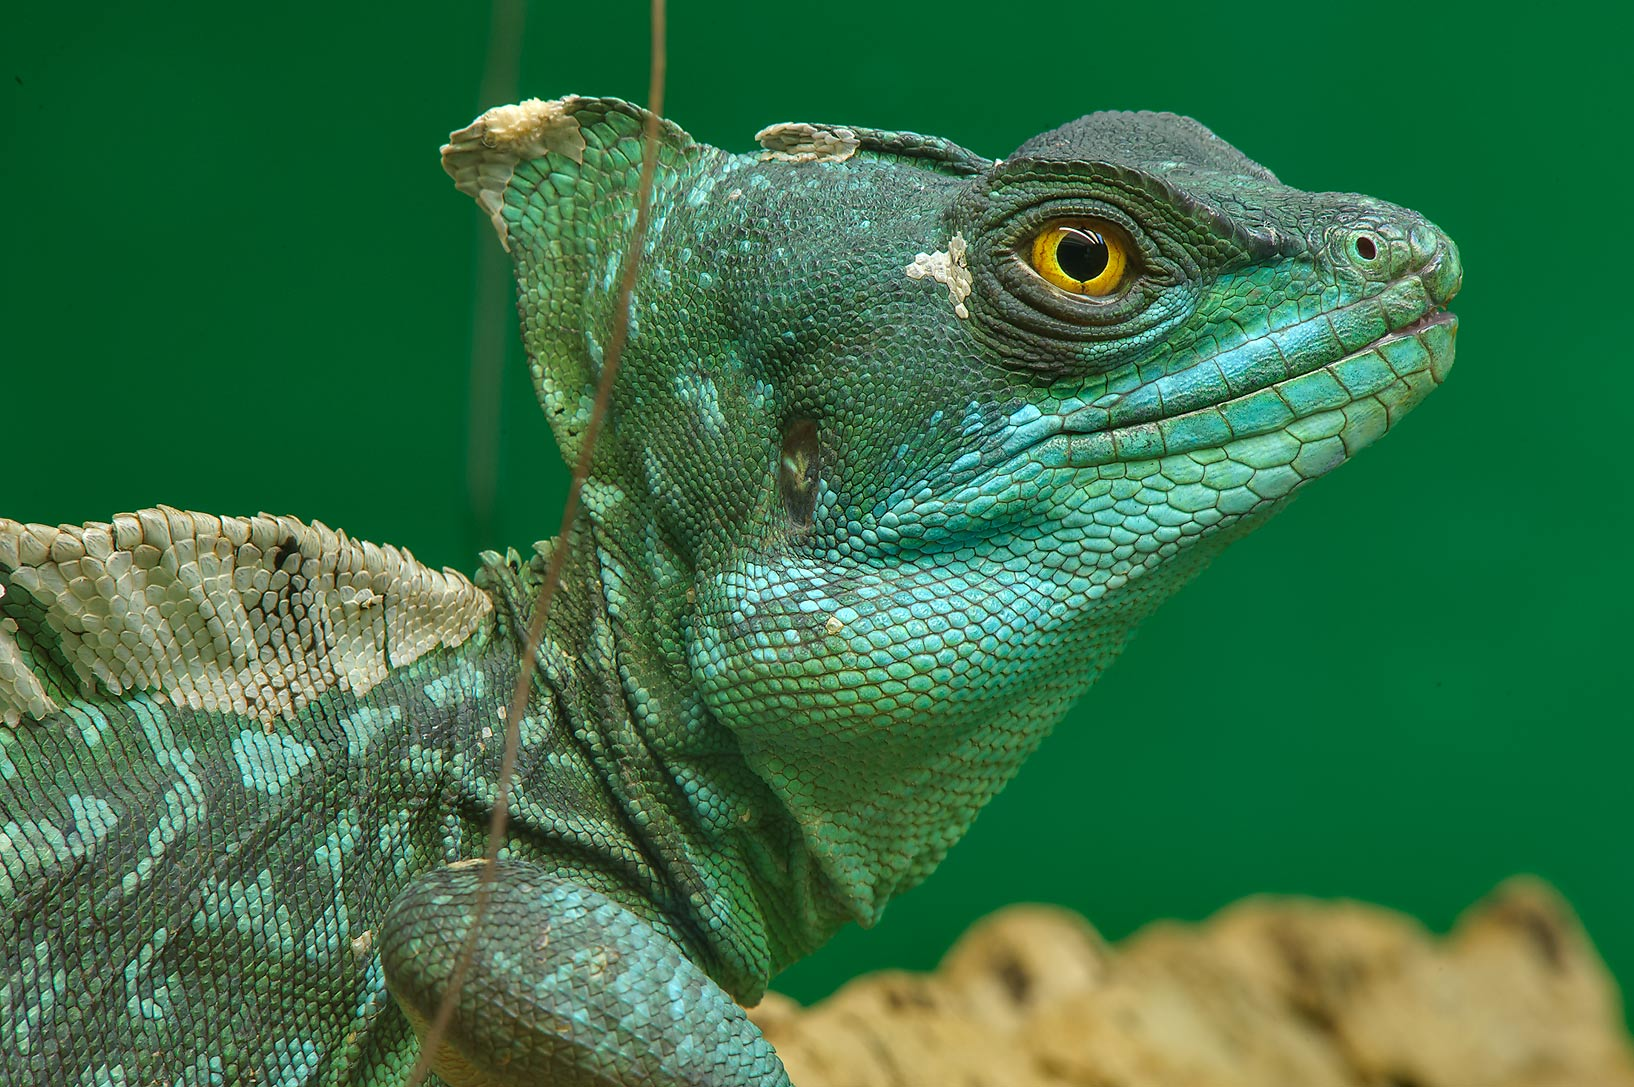 Green iguana in Leningrad Zoo. St.Petersburg, Russia